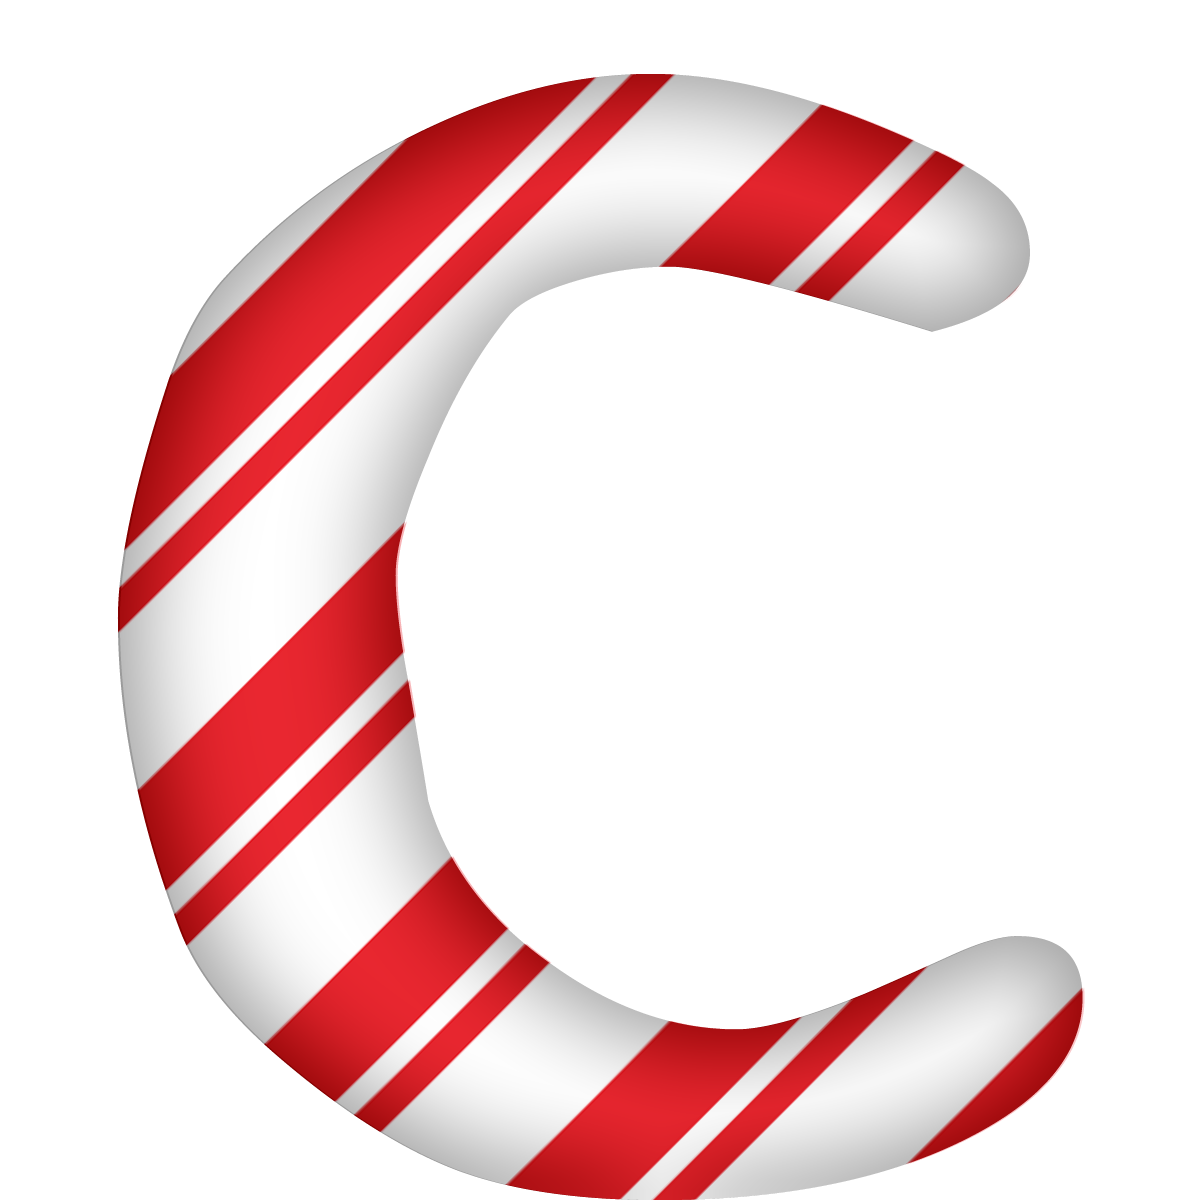 Christmas alphabet letter clipart image transparent library 28+ Collection of Letter C Clipart Christmas | High quality, free ... image transparent library